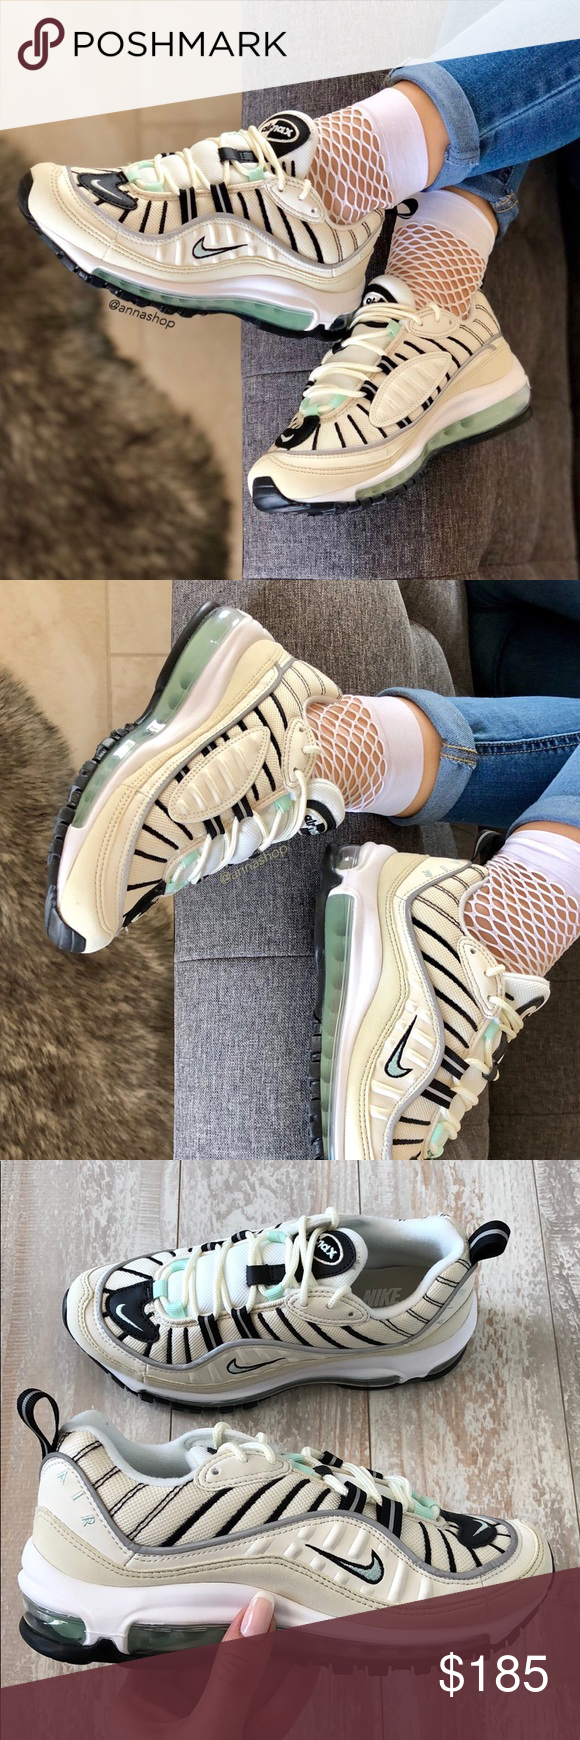 pretty nice c44d6 33975 NWT🧚 ♀️Nike Air max 98 Rare! Brand new with box no lid ...